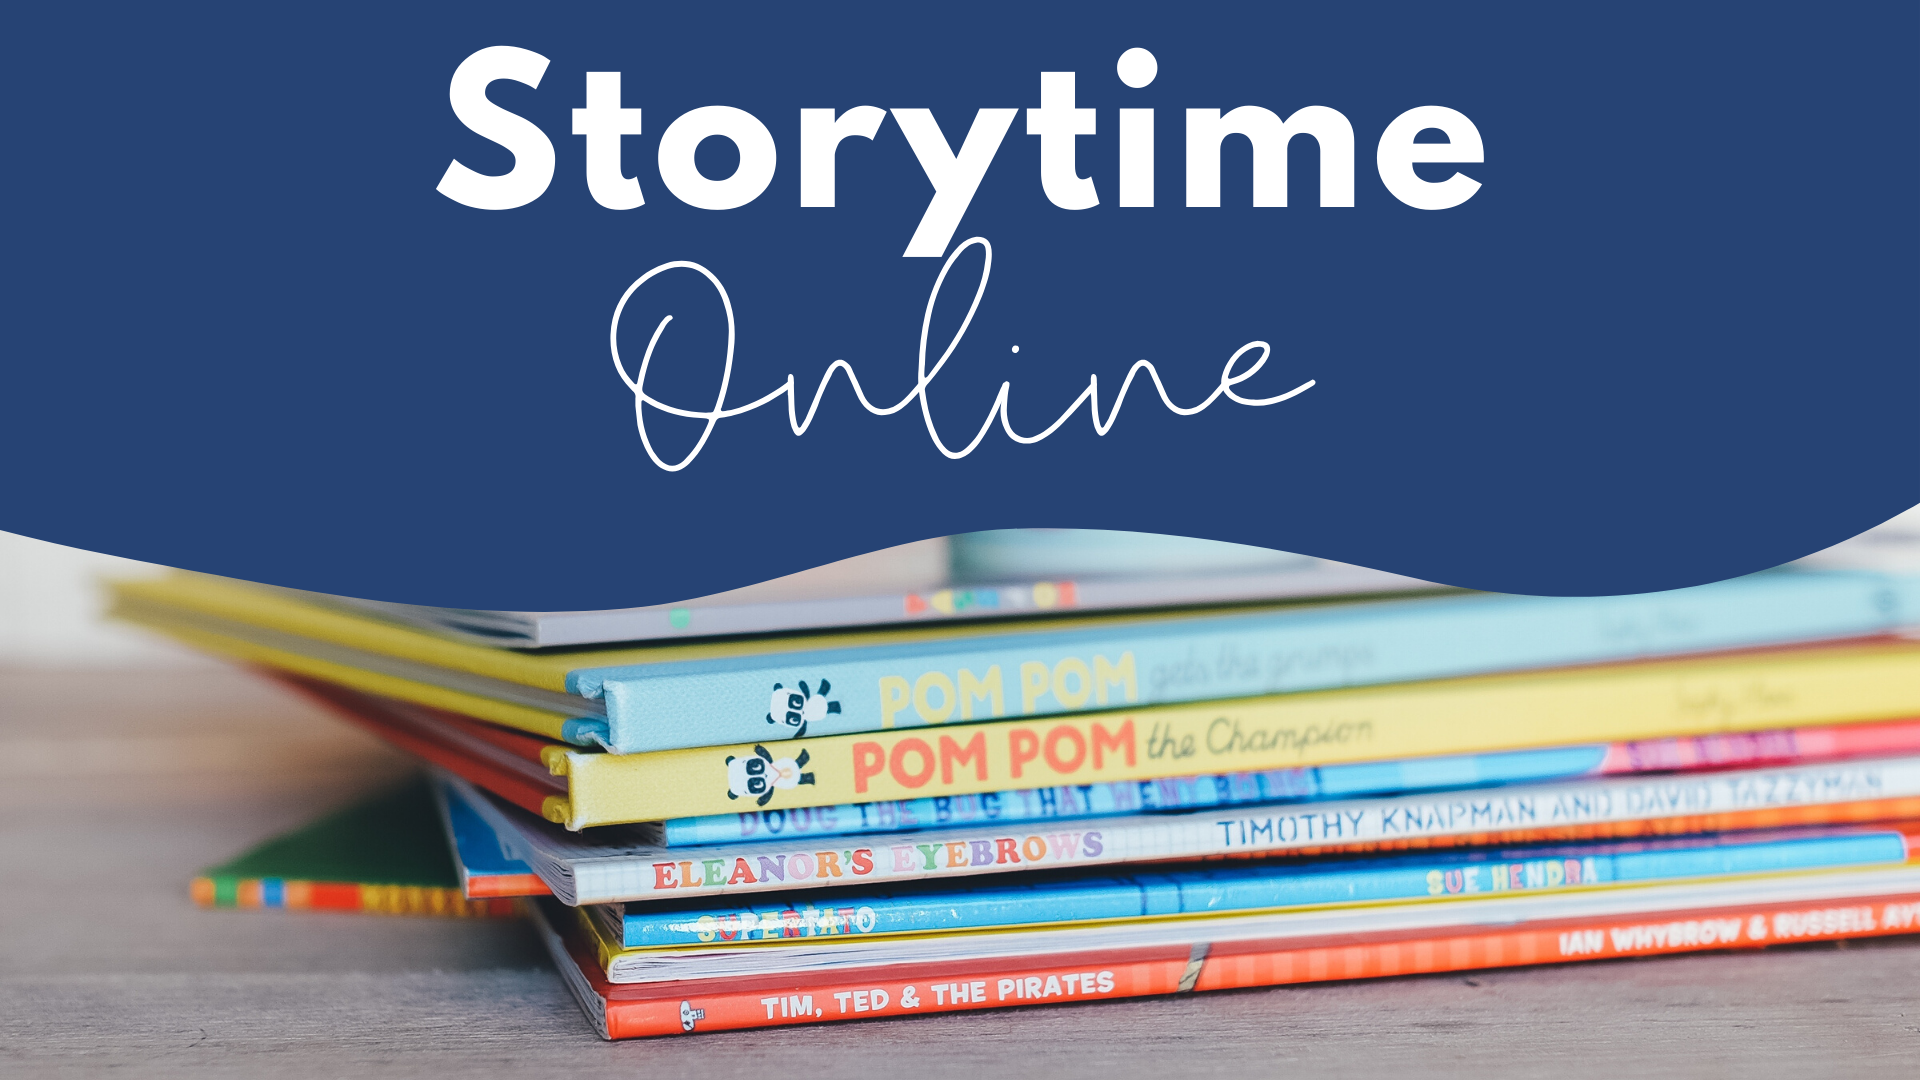 StorytimeOnlineFBEvent